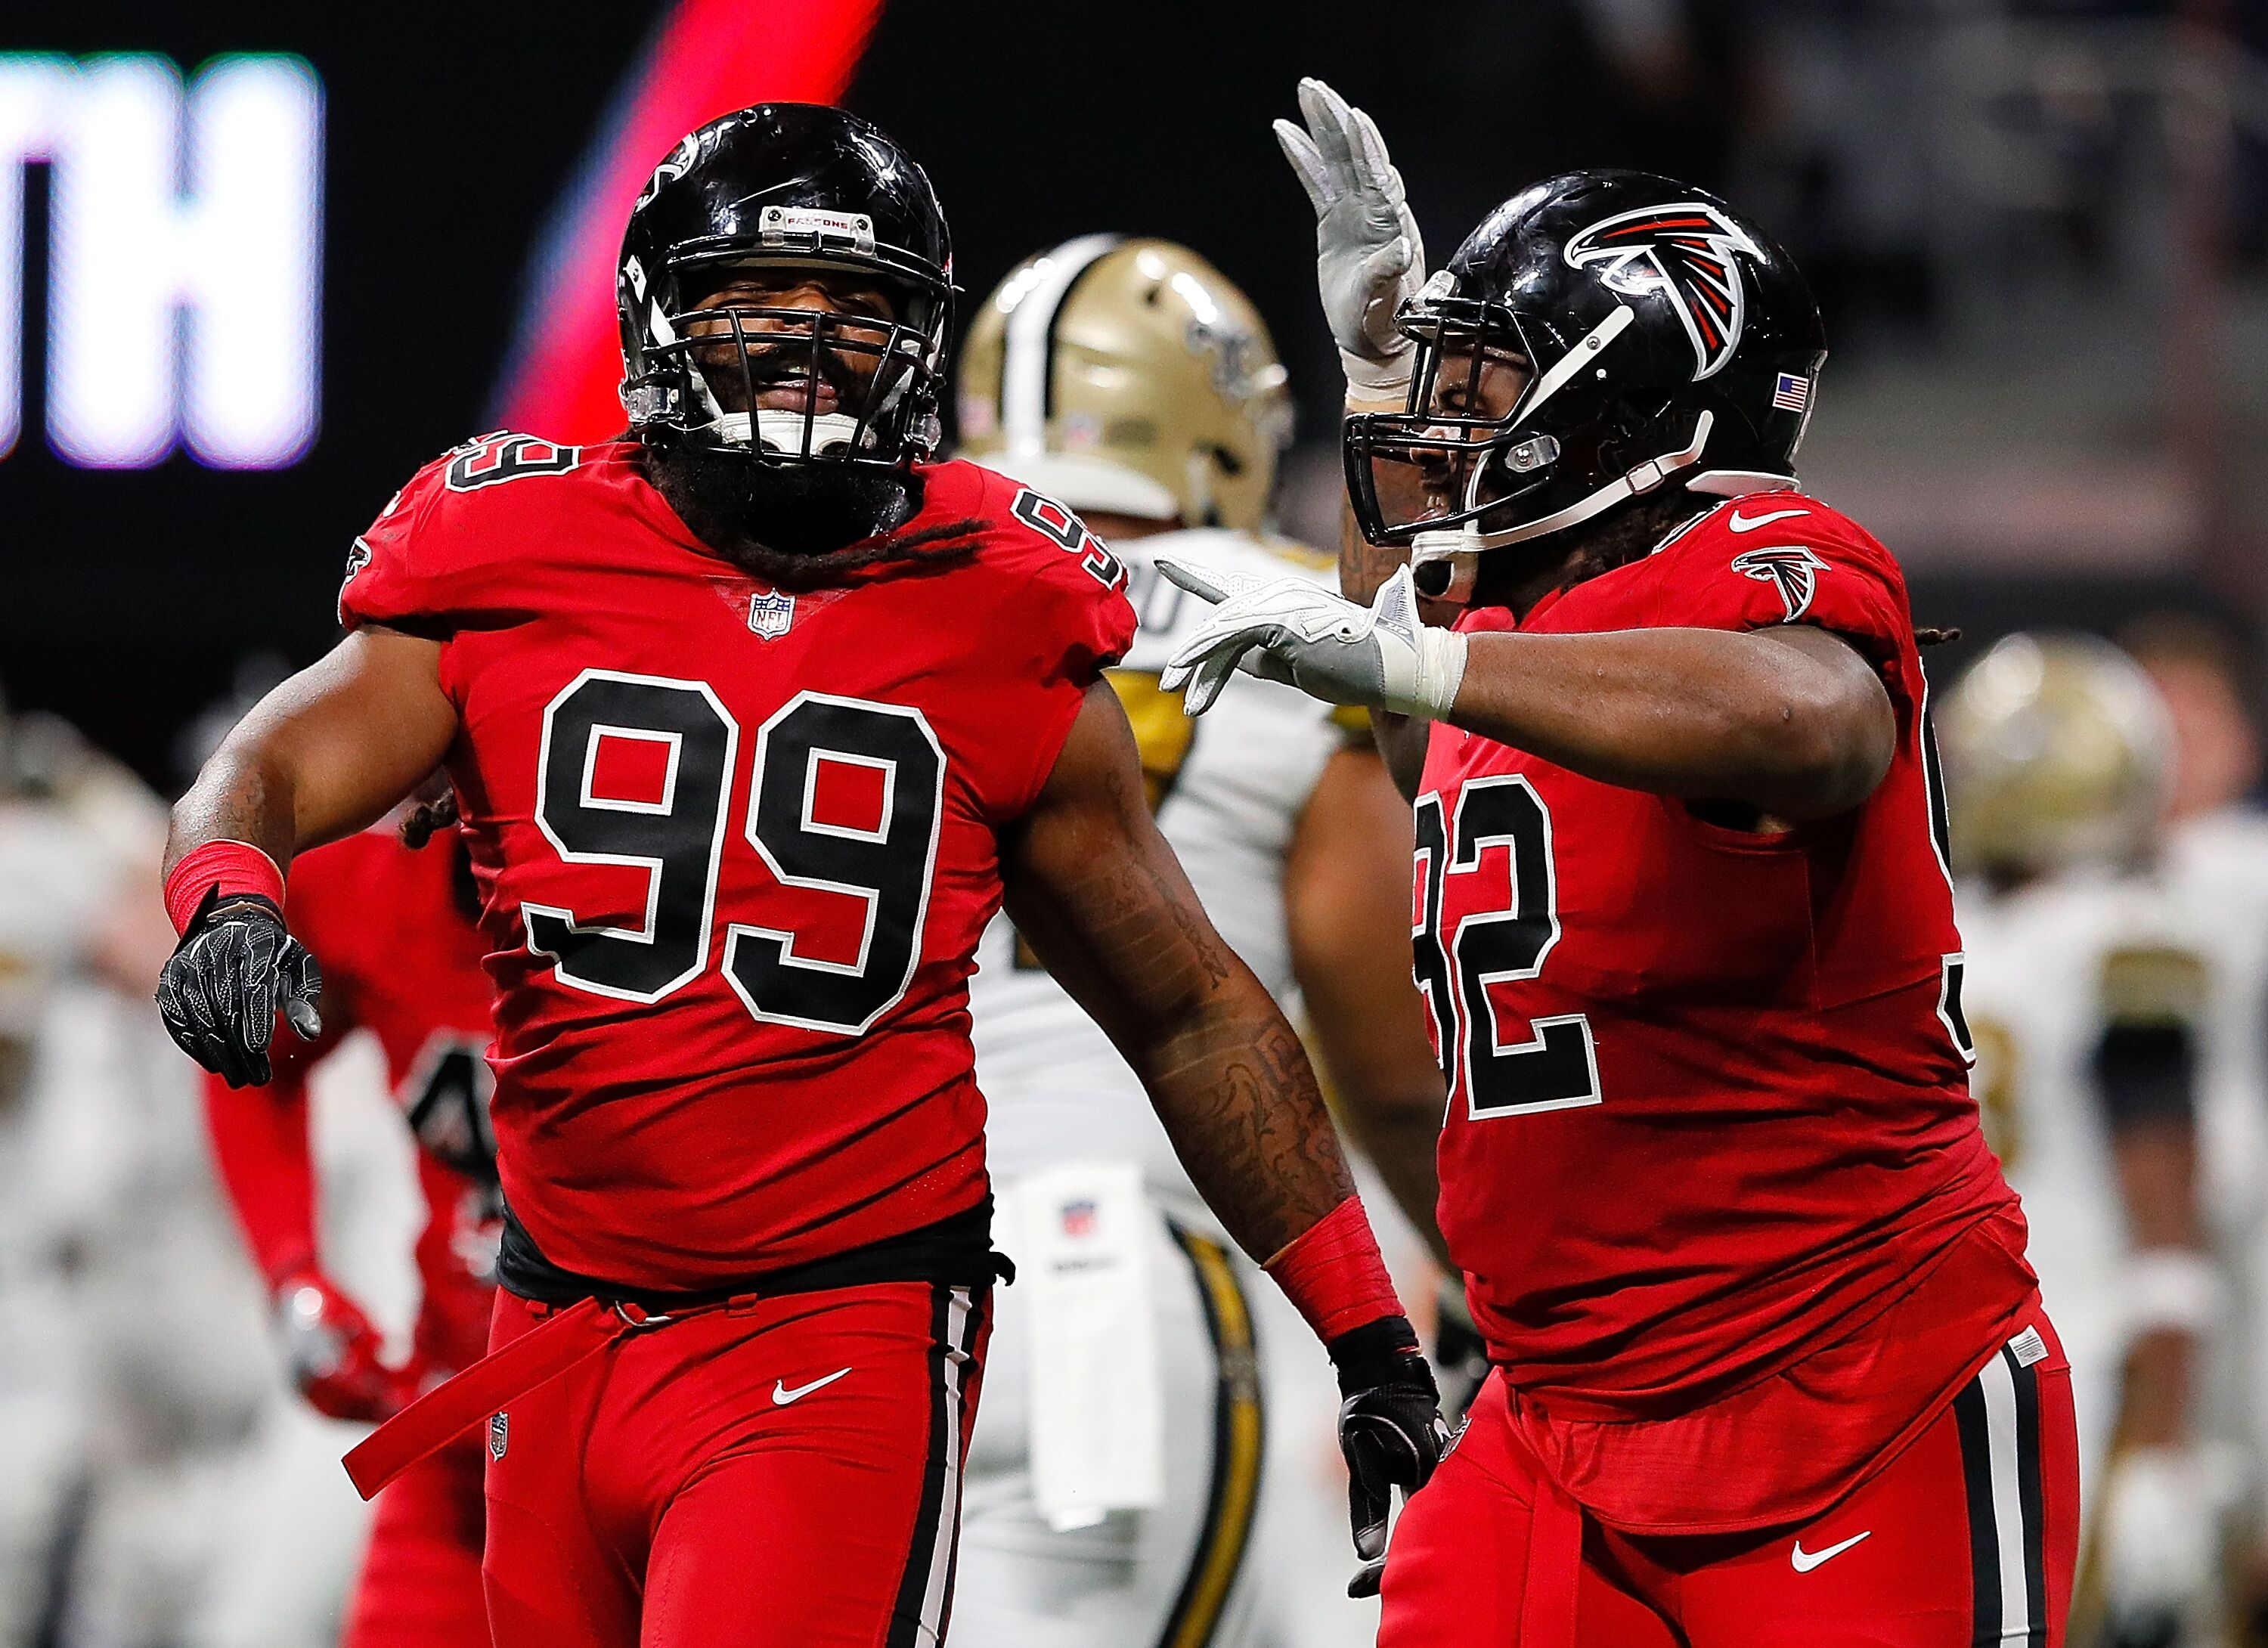 888028702-new-orleans-saints-v-atlanta-falcons.jpg